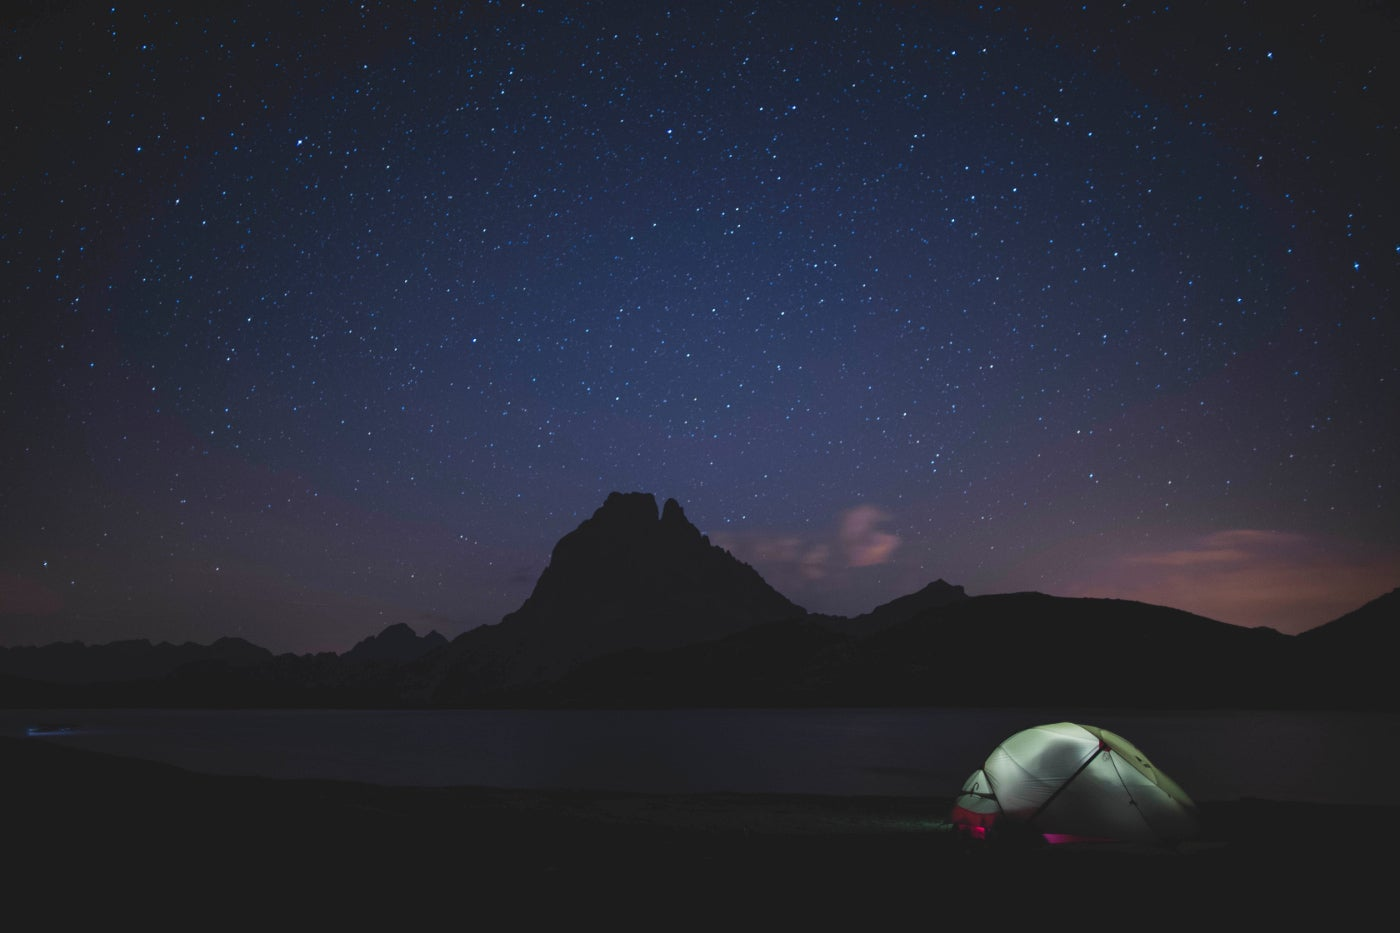 a tent with a light inside it on a silhouetted campsite under a purple and blue night sky